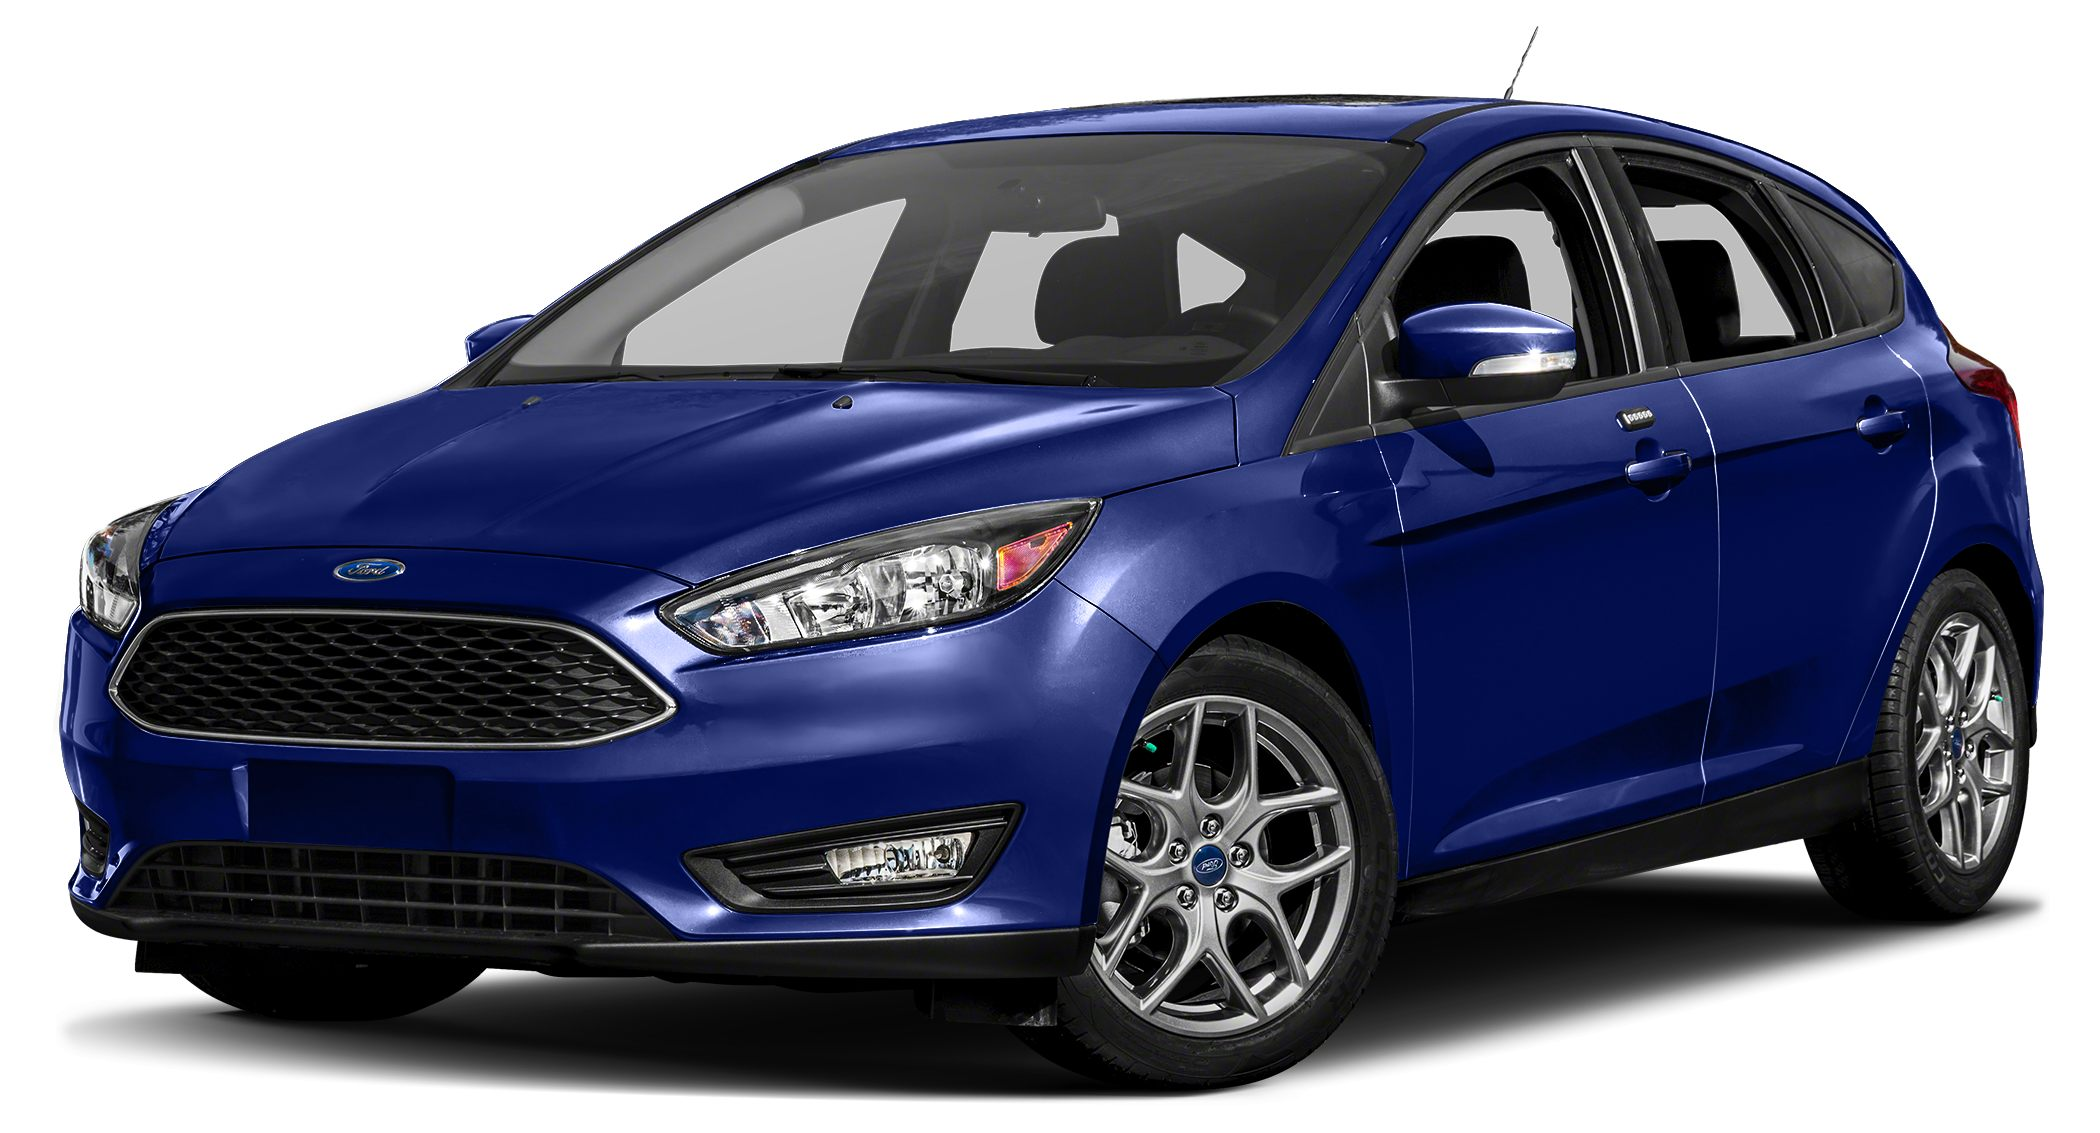 2015 Ford Focus Titanium Price includes 1250 - RETAIL Customer Cash 1000 - Ford Credit Retai